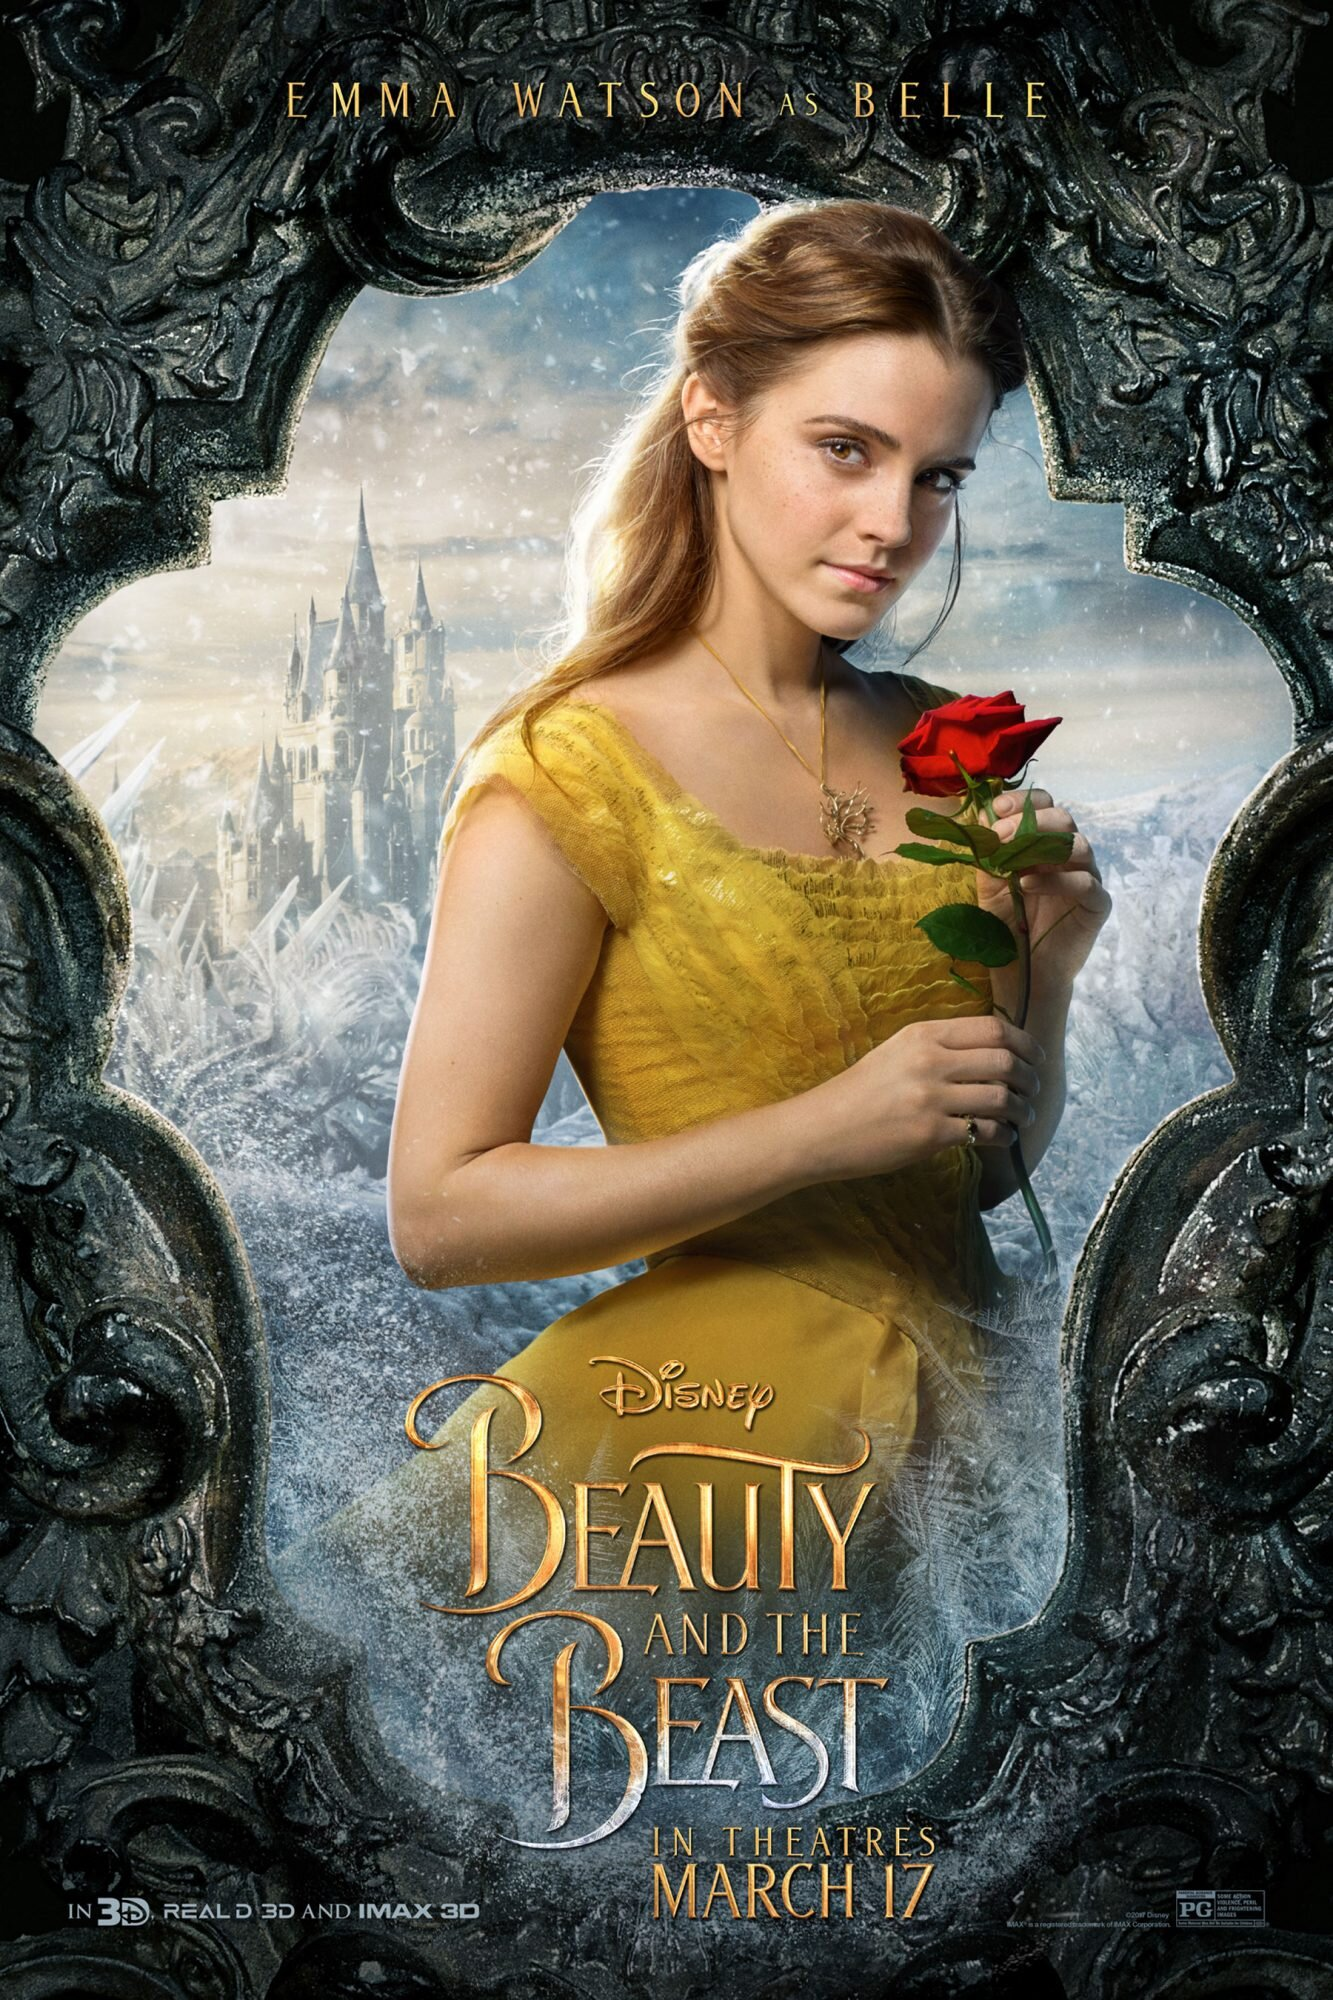 beauty and the beast character posters beauty and the beast character posters | ew